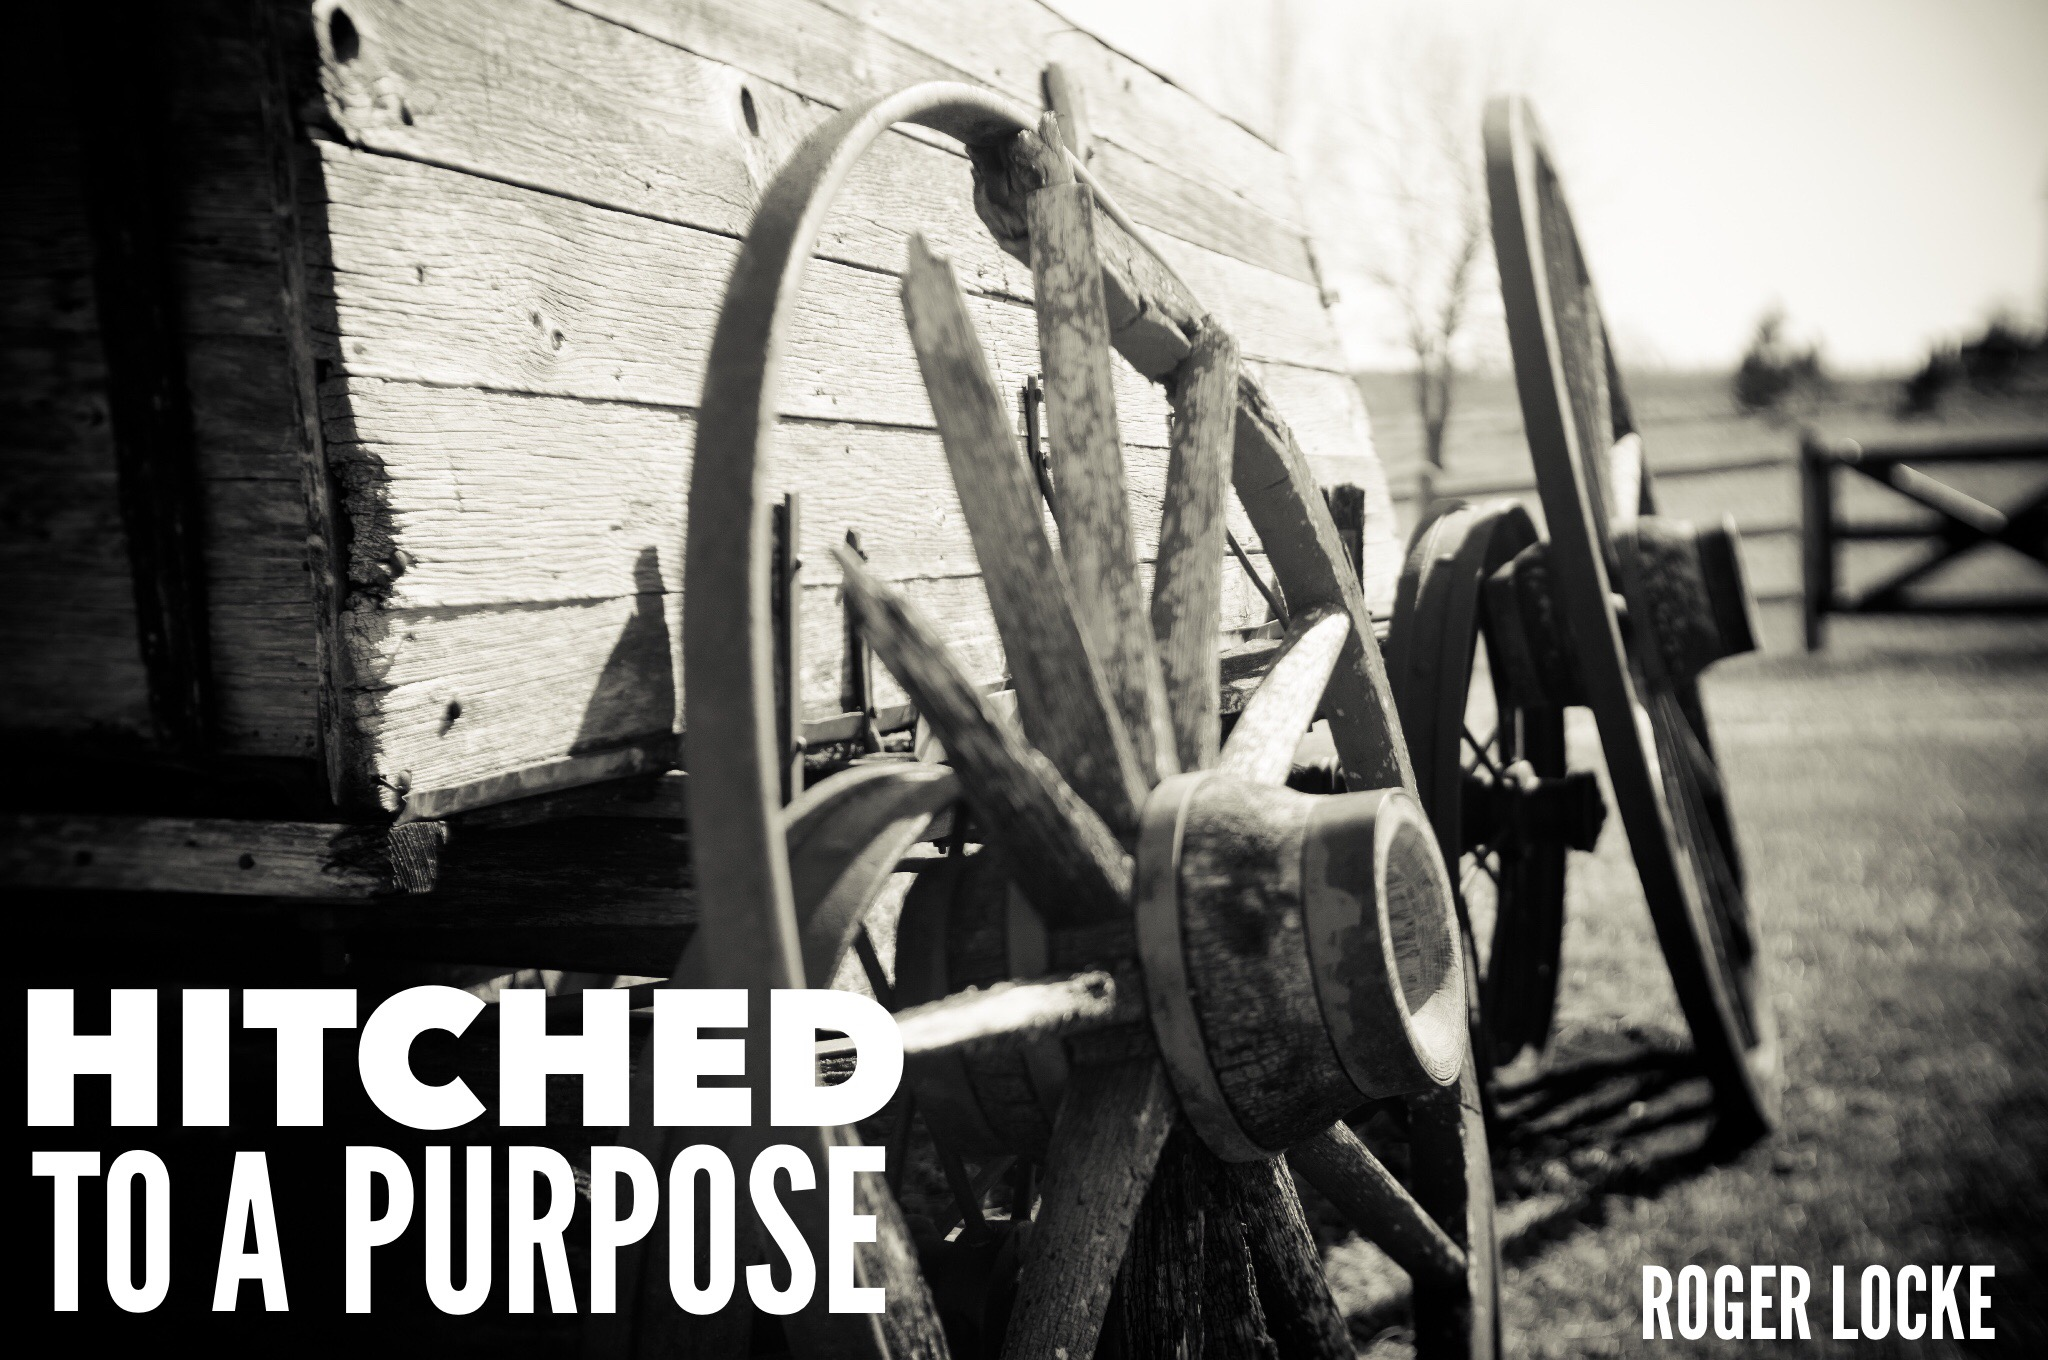 Hitched to a Purpose